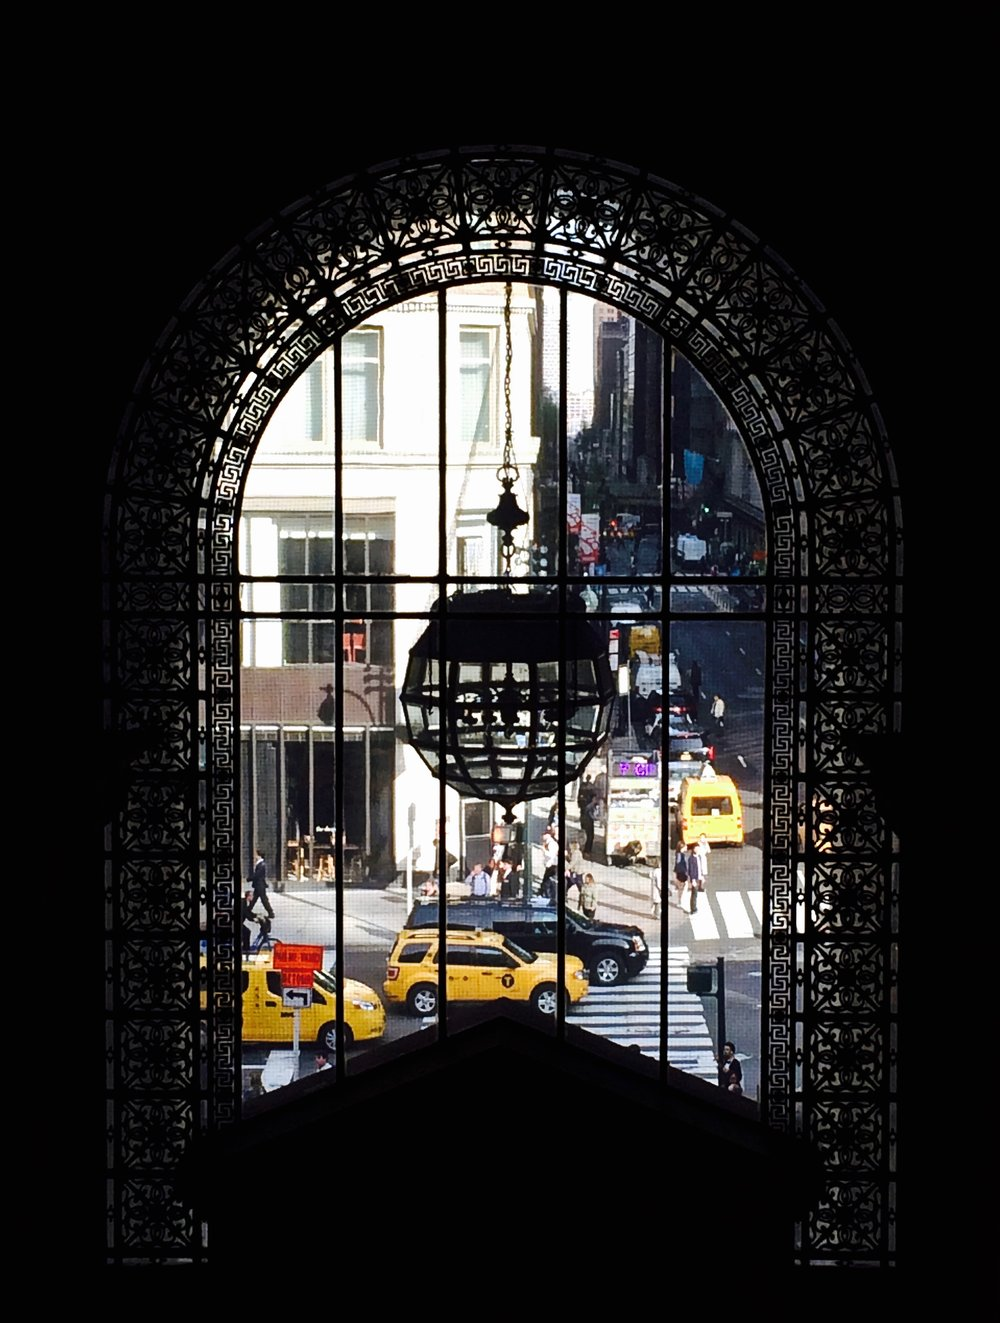 Looking out through one of the windows at the New York Public Library